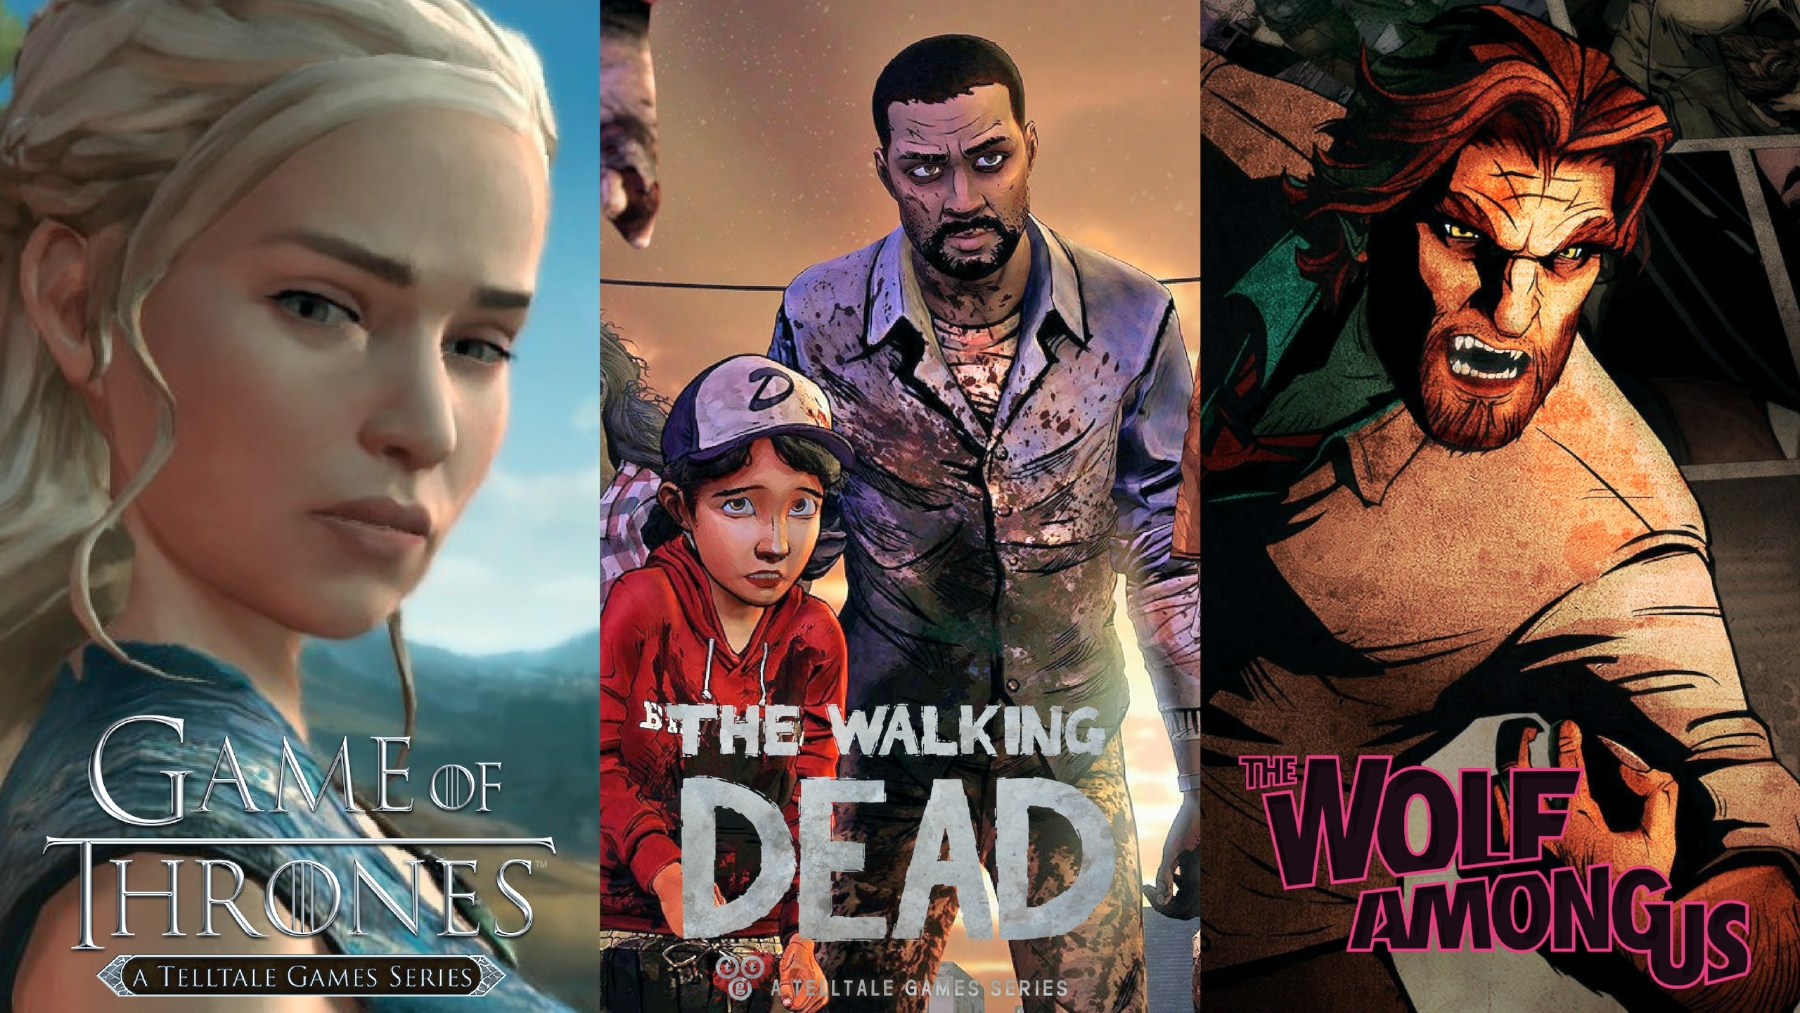 Game of Thrones developed and published by Telltale Games; The Walking Dead developed by Skybound Games and Telltale Games, published by Telltale Games; The Wolf Among Us developed and published by Telltale Games.